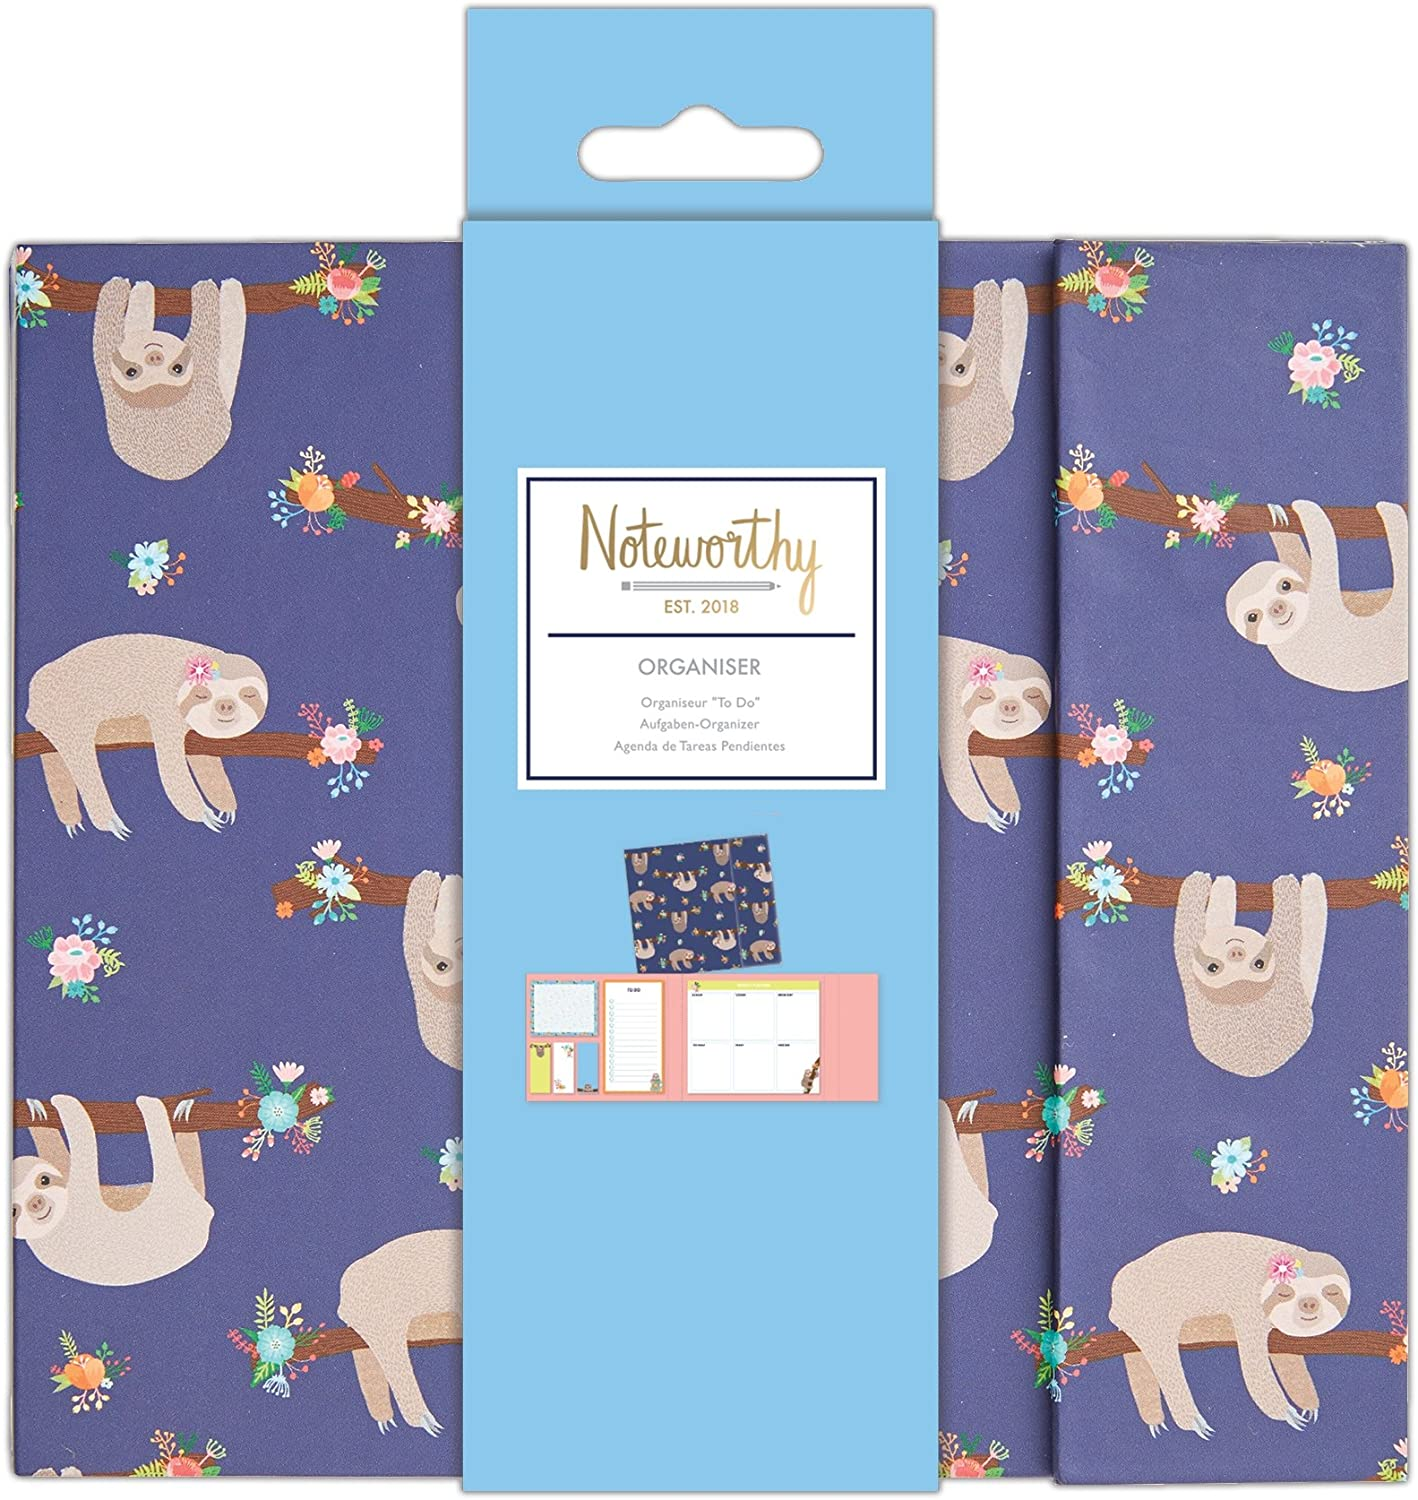 Noteworthy It/'s A Sloths Life Decorative Tape 4x5m - Its Stationery